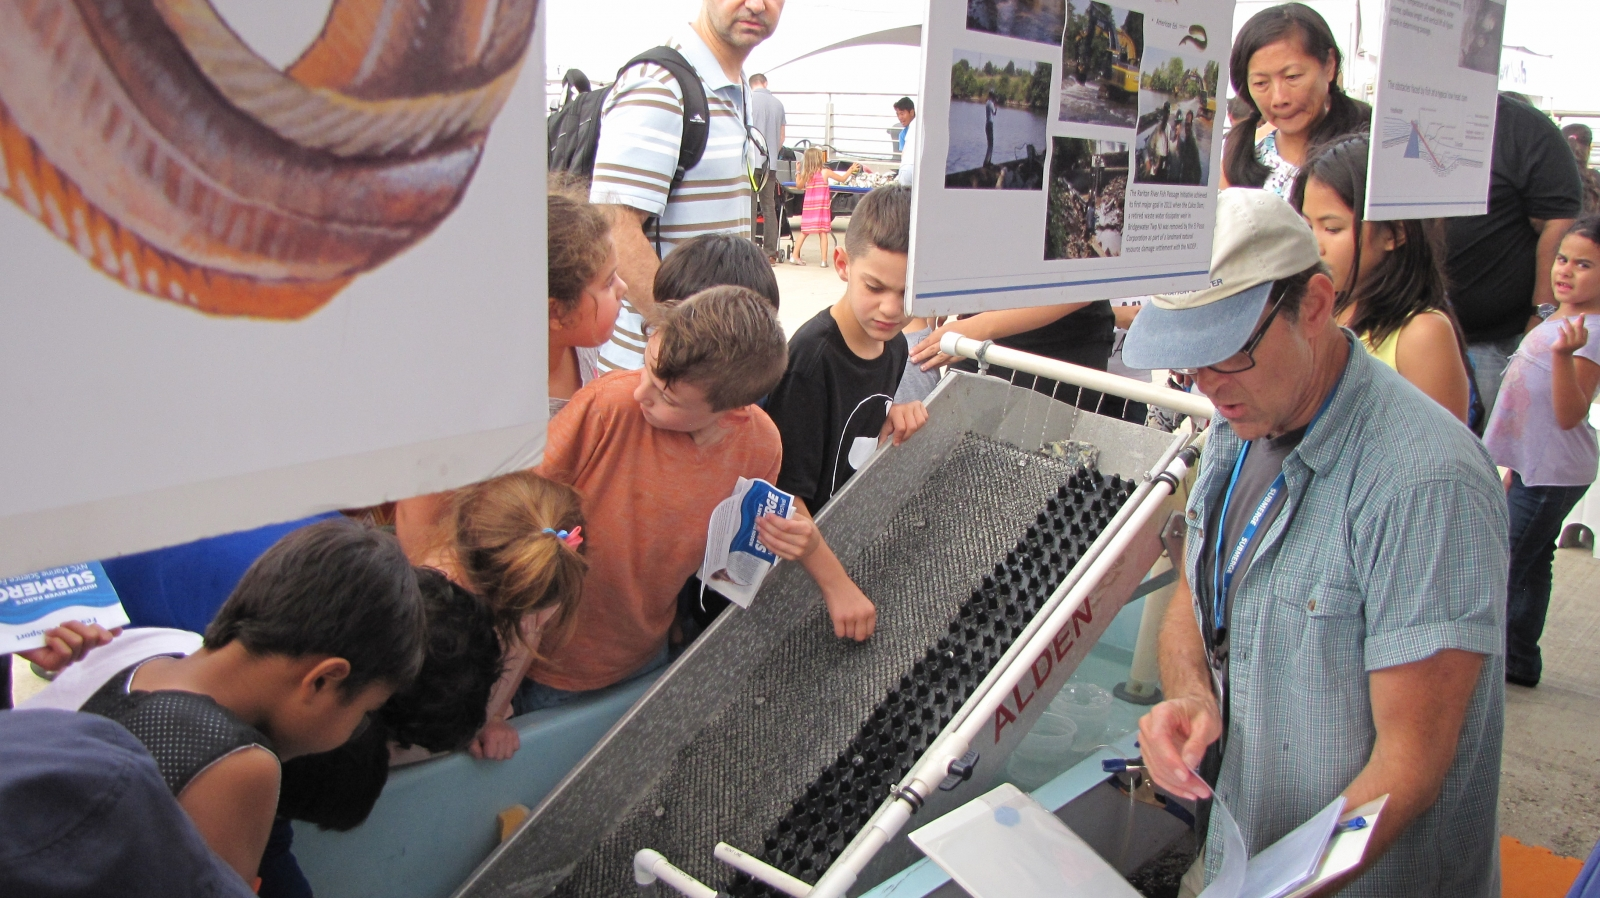 A group of people around a demonstration table with an eel ladder.